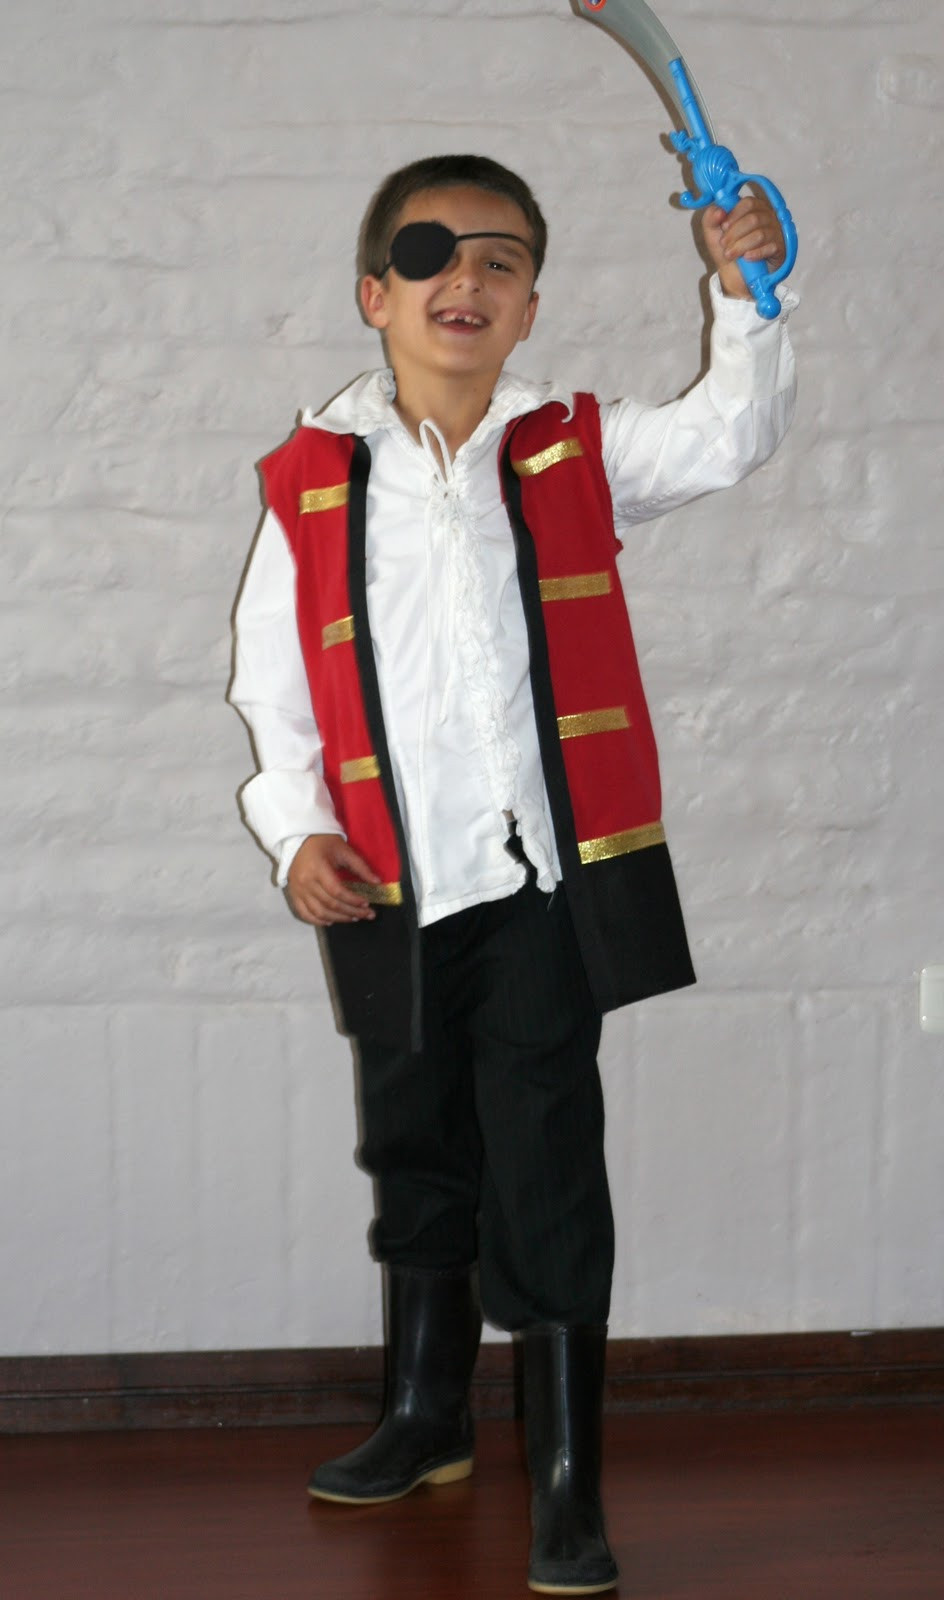 DIY Captain Hook Costumes  How to Make a No Sew Captain Hook Costume From a T Shirt